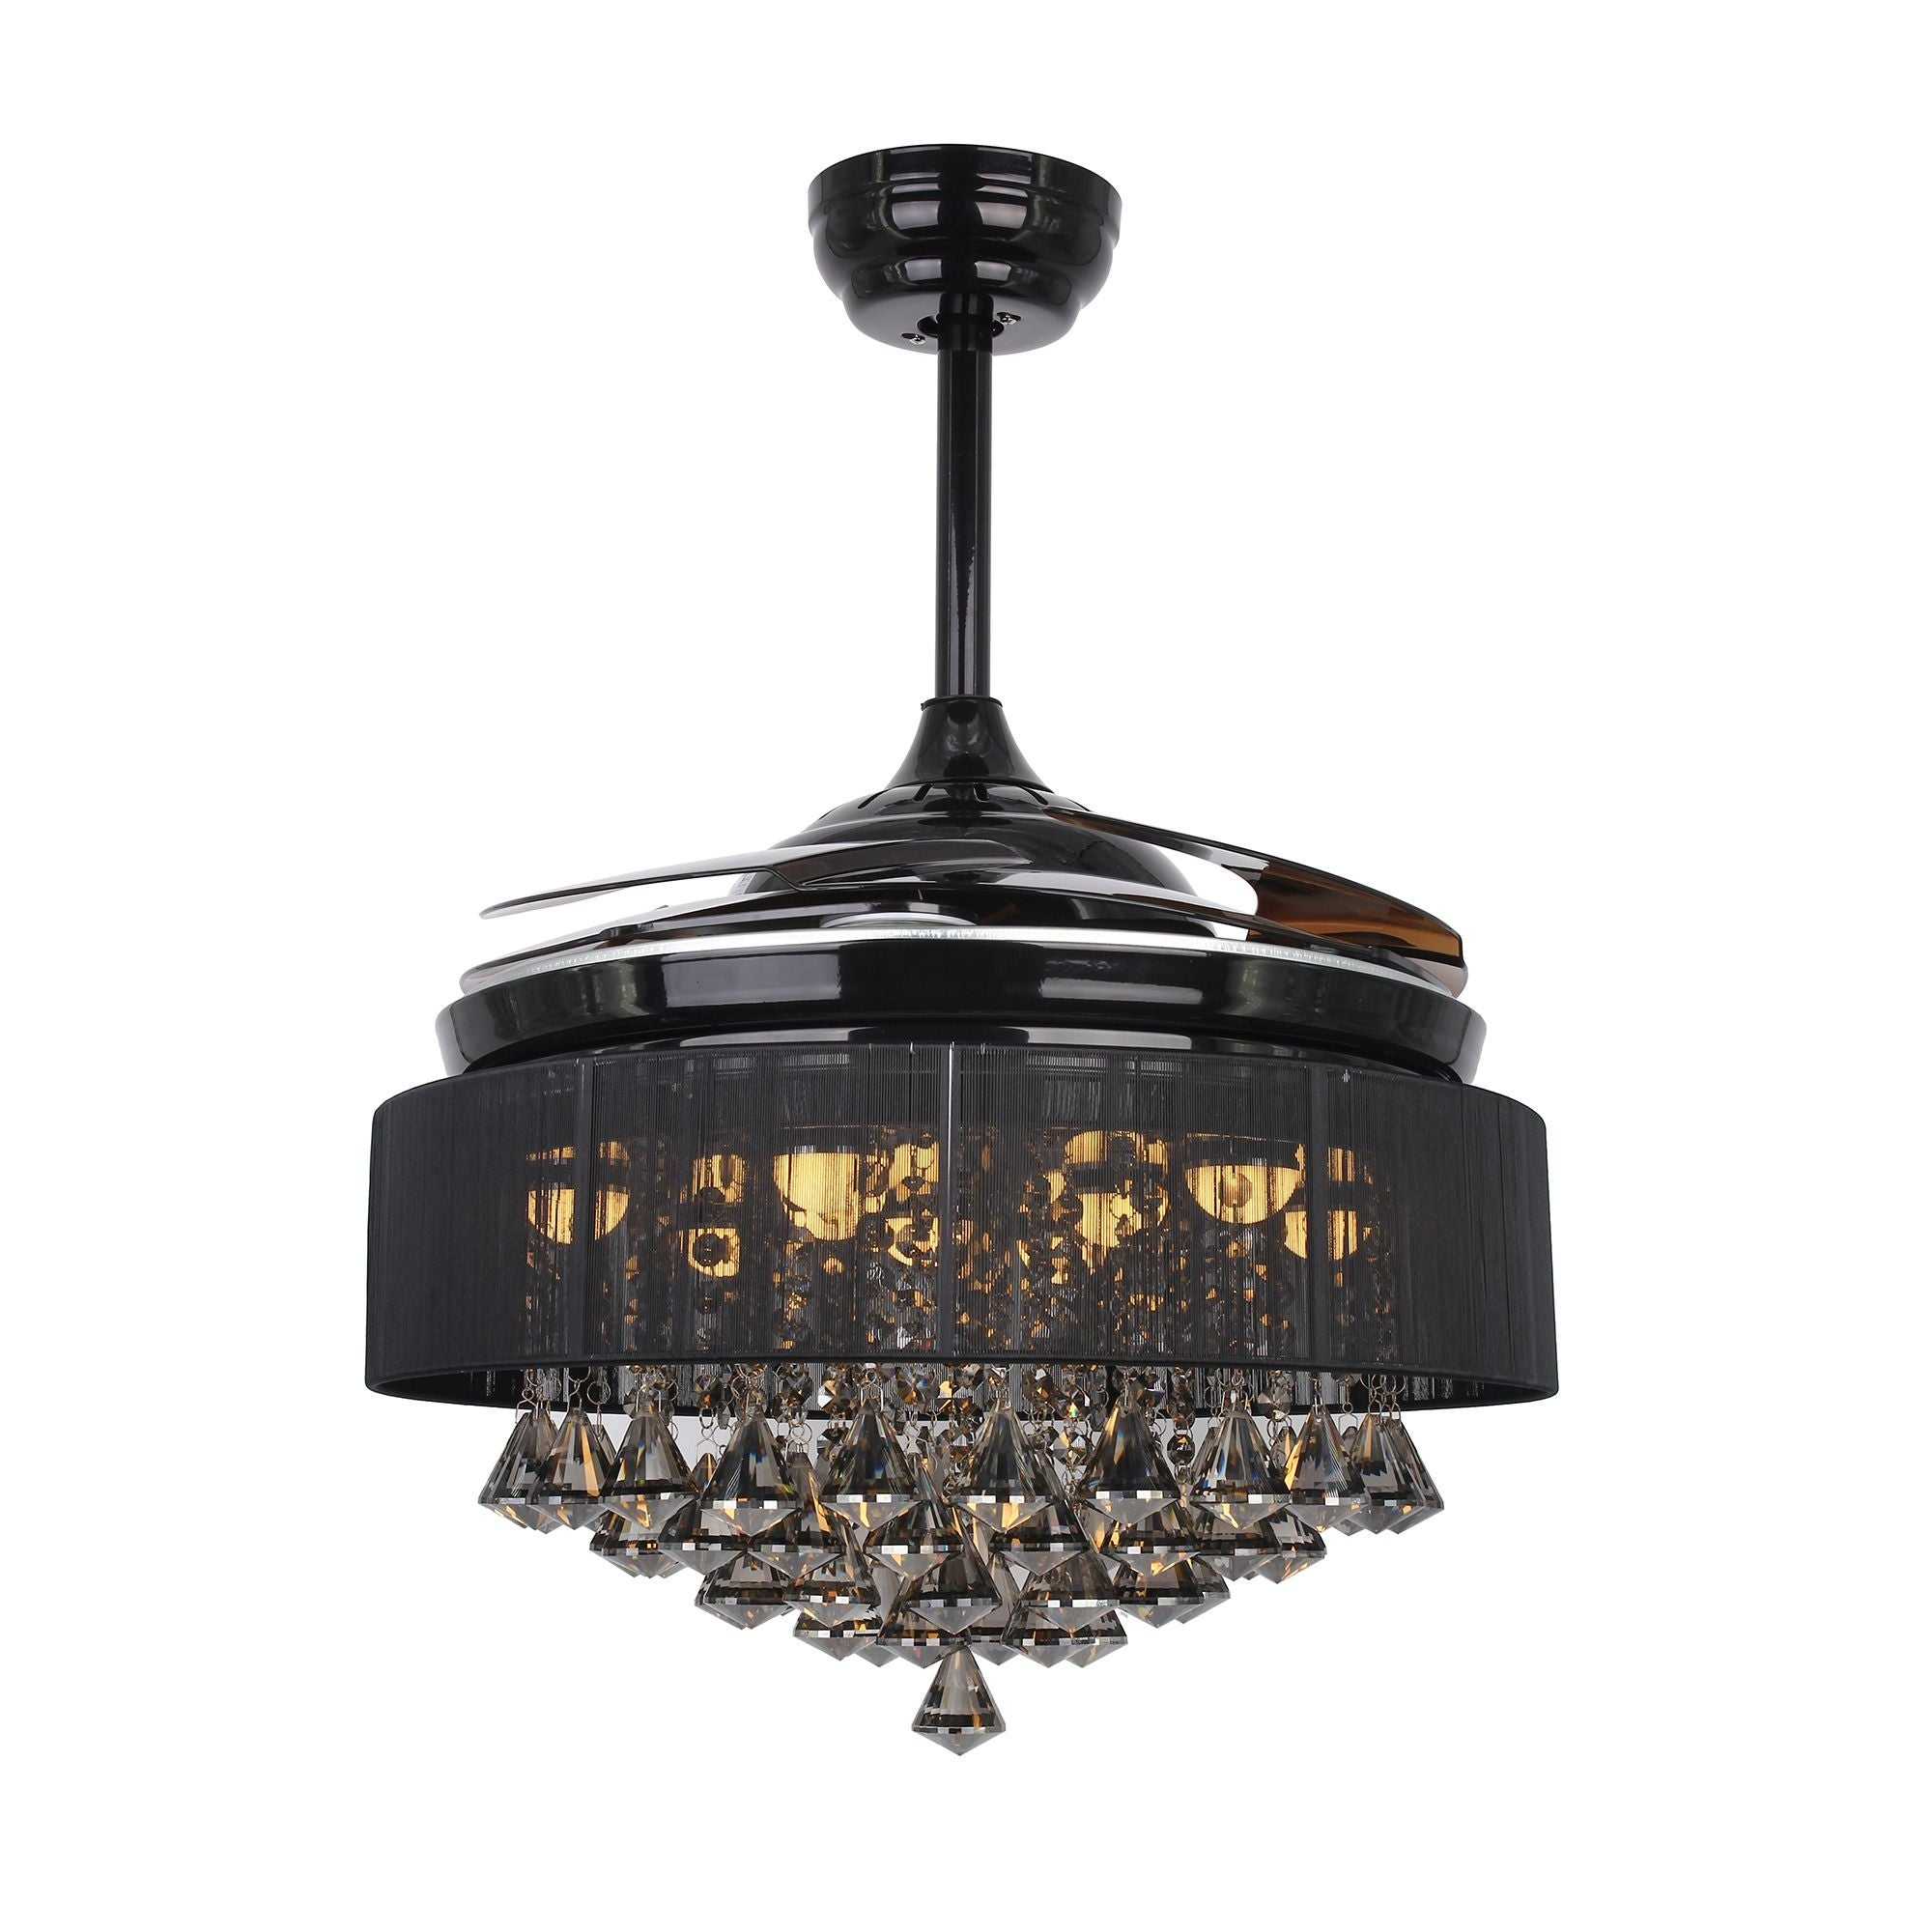 Modern 42 inch LED Ceiling Fan with Remote Crystal Chandelier